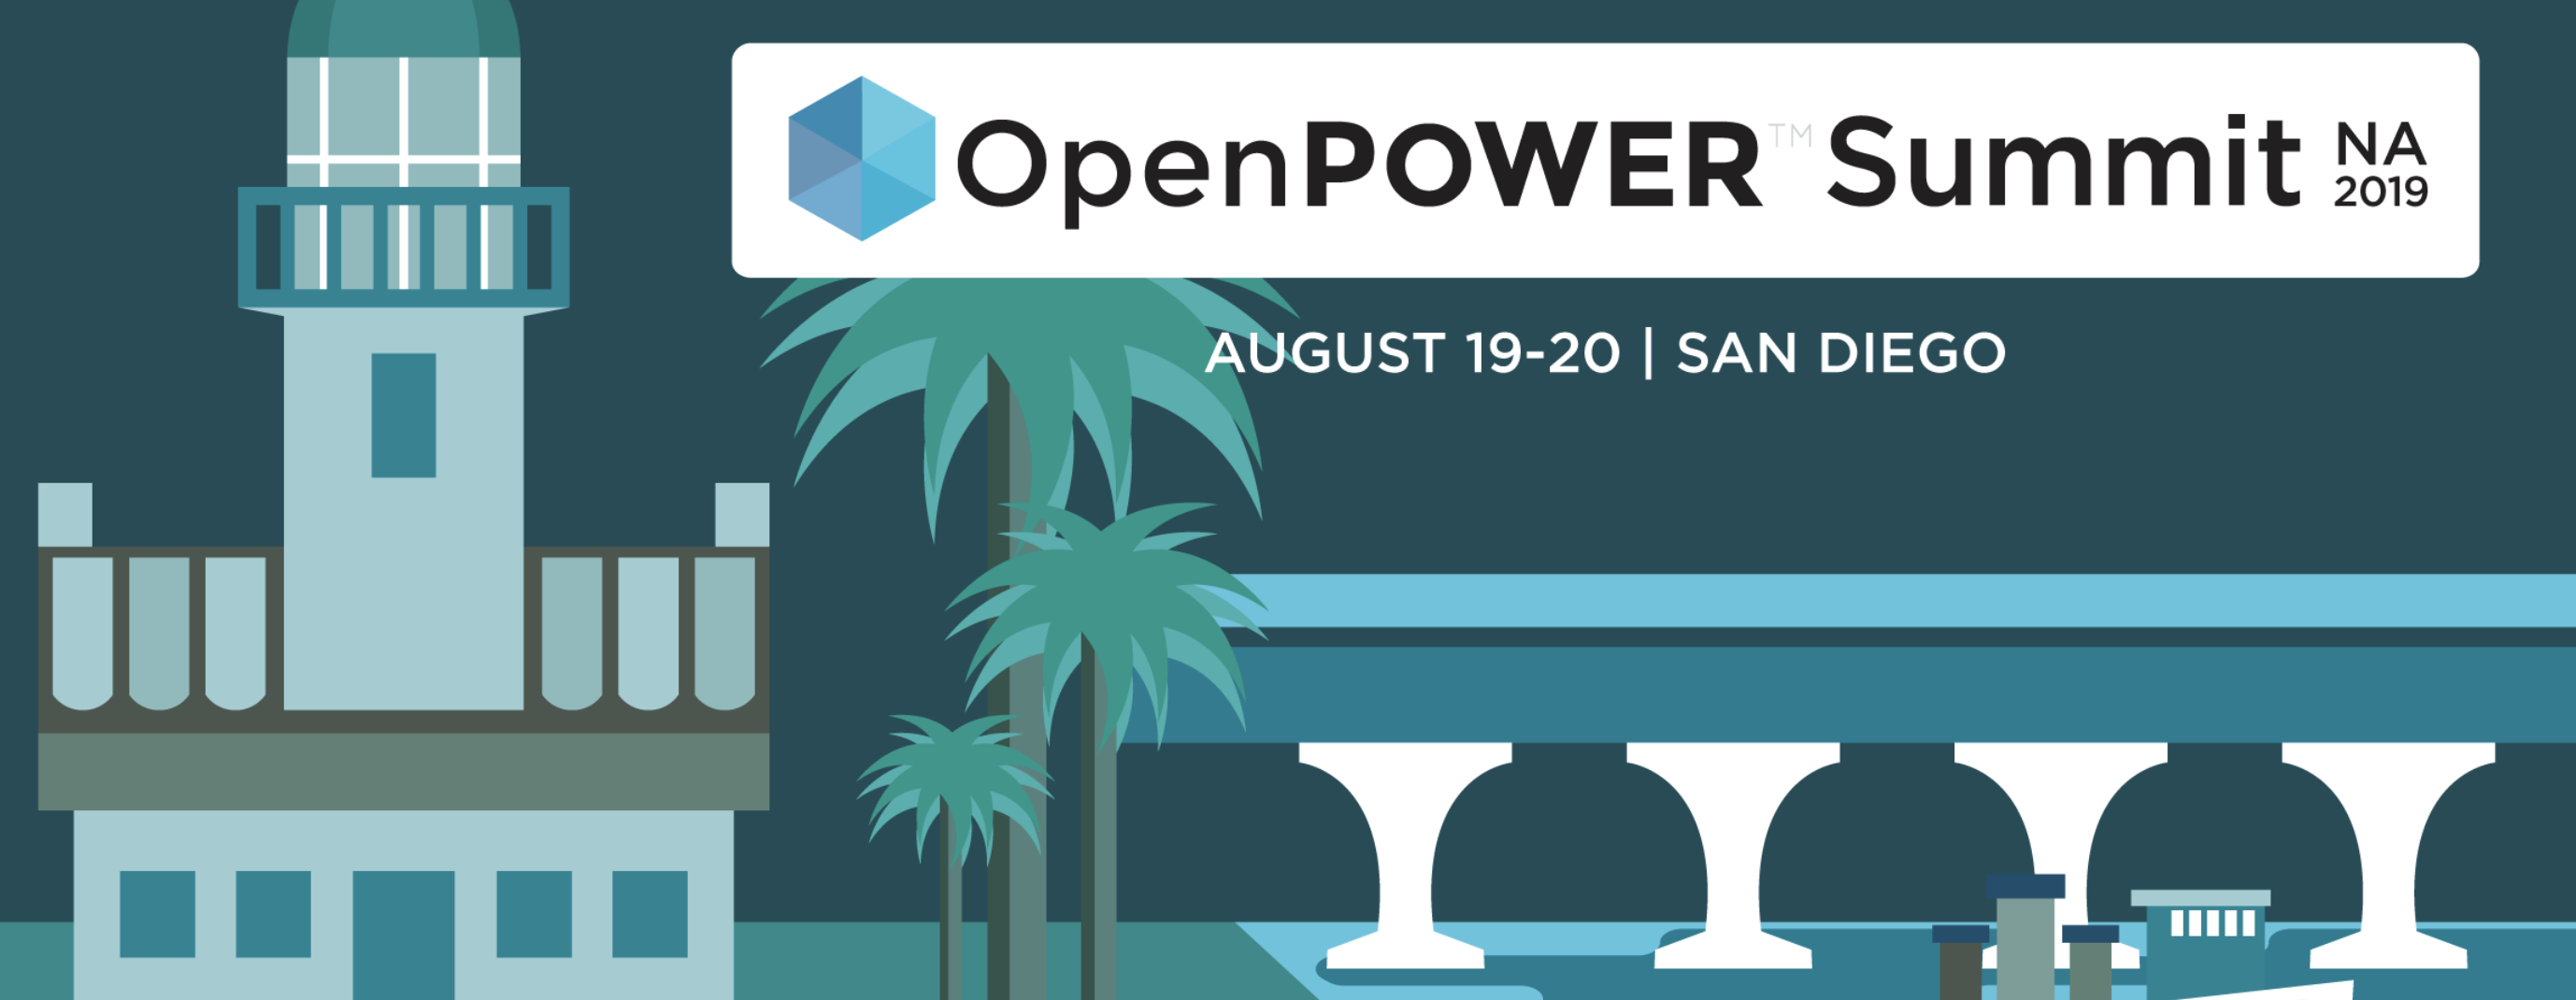 OpenPOWER Summit 2019